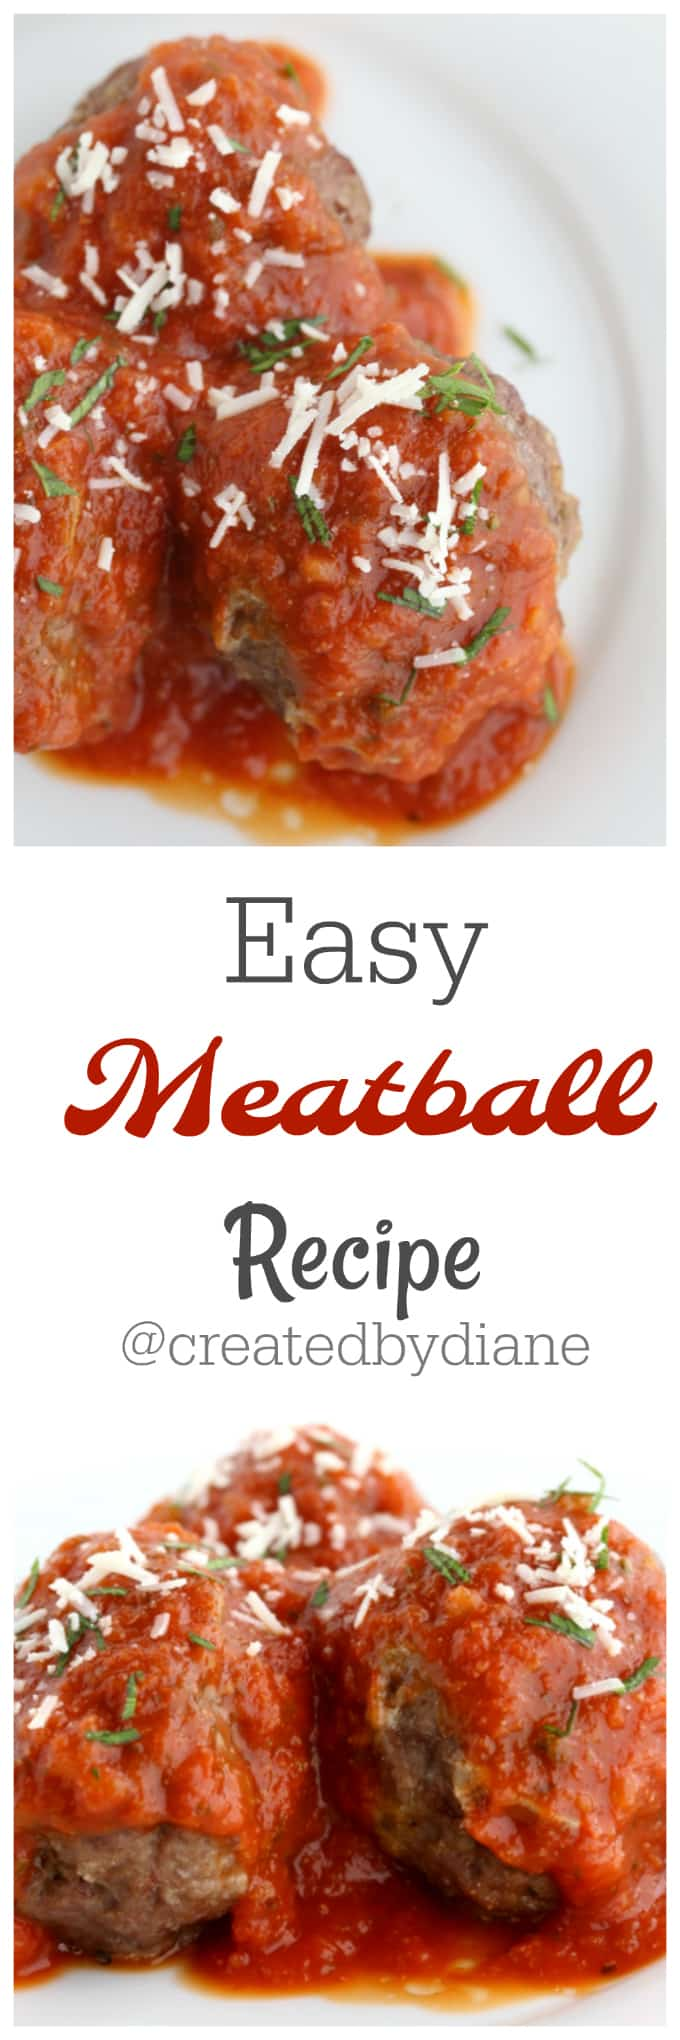 easy meatball recipe from @createdbydiane